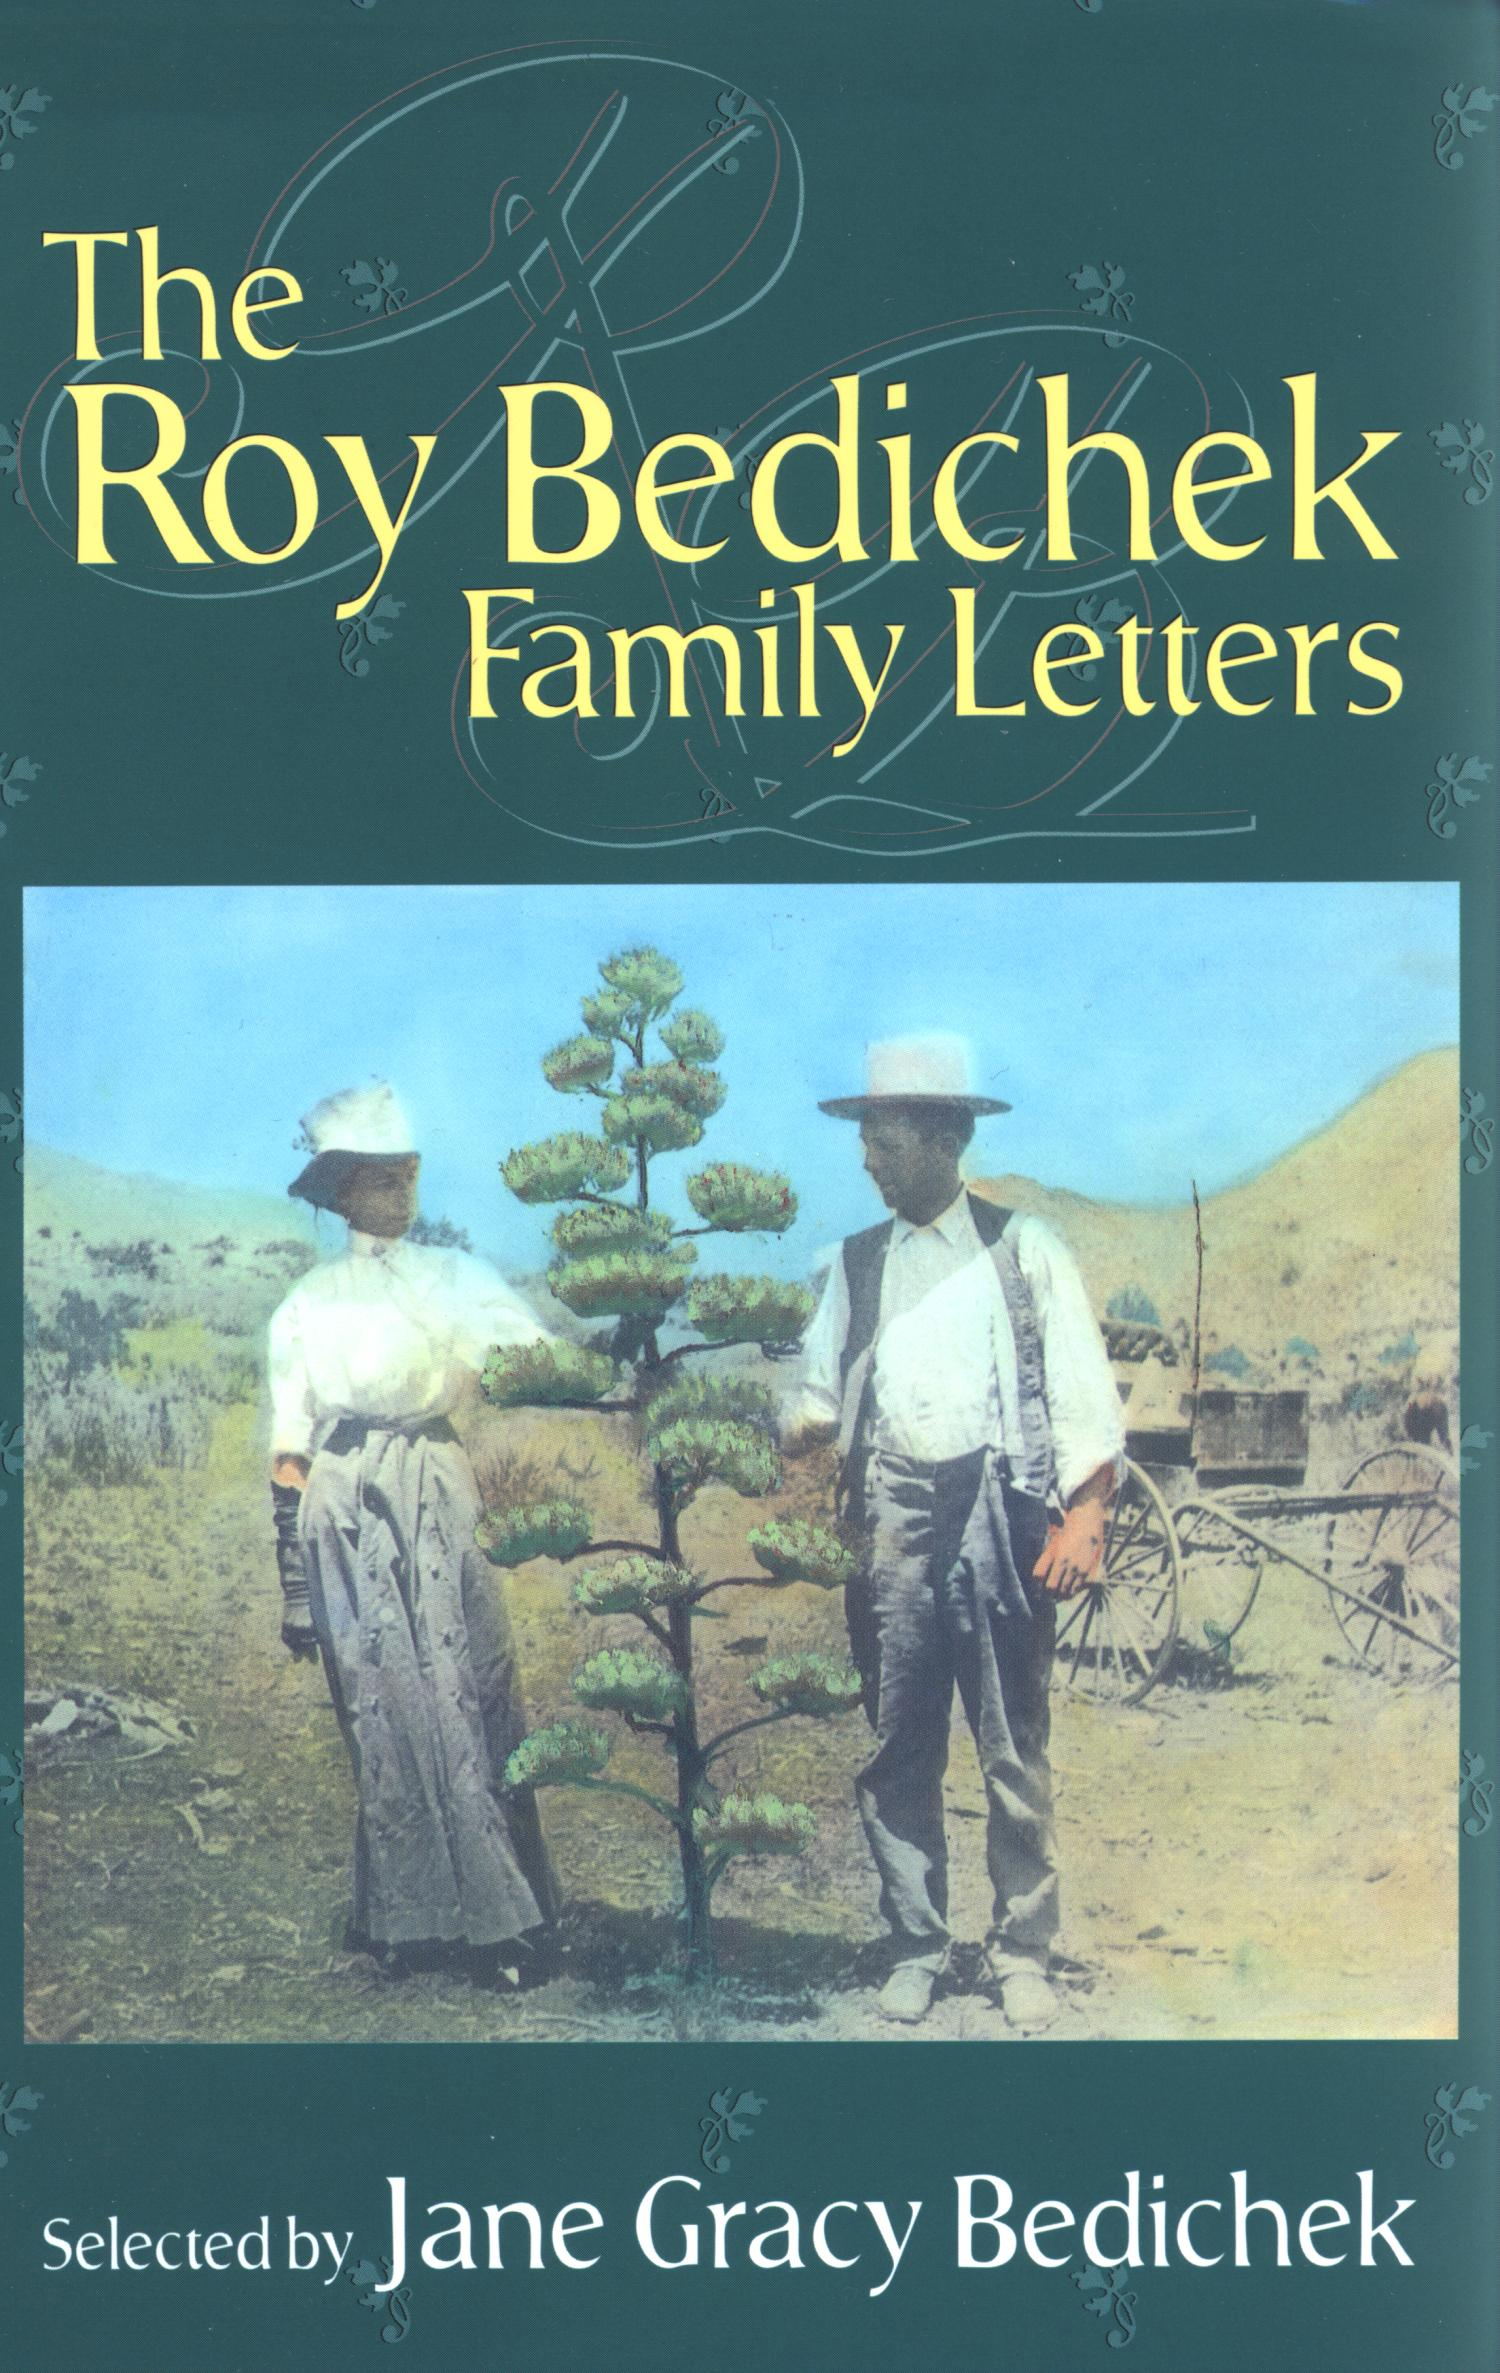 The Roy Bedichek Family Letters                                                                                                      Front Cover